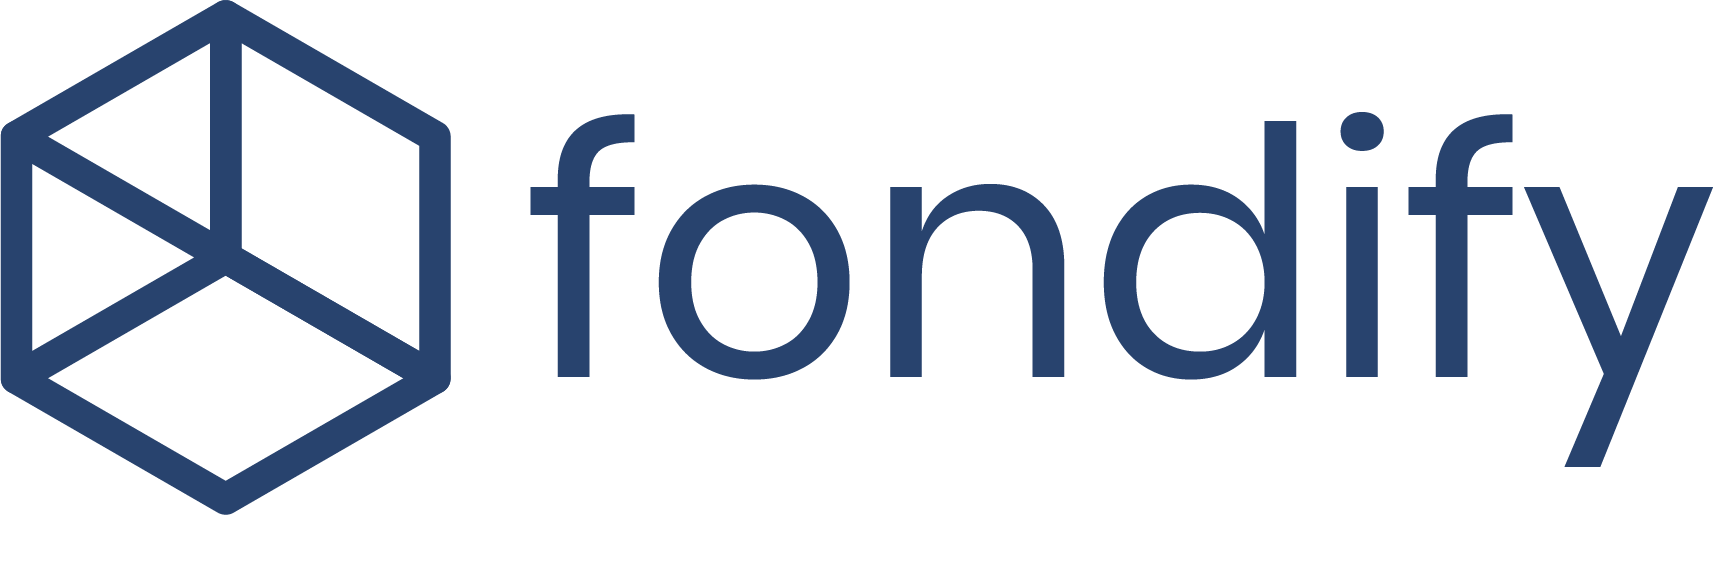 Fondify